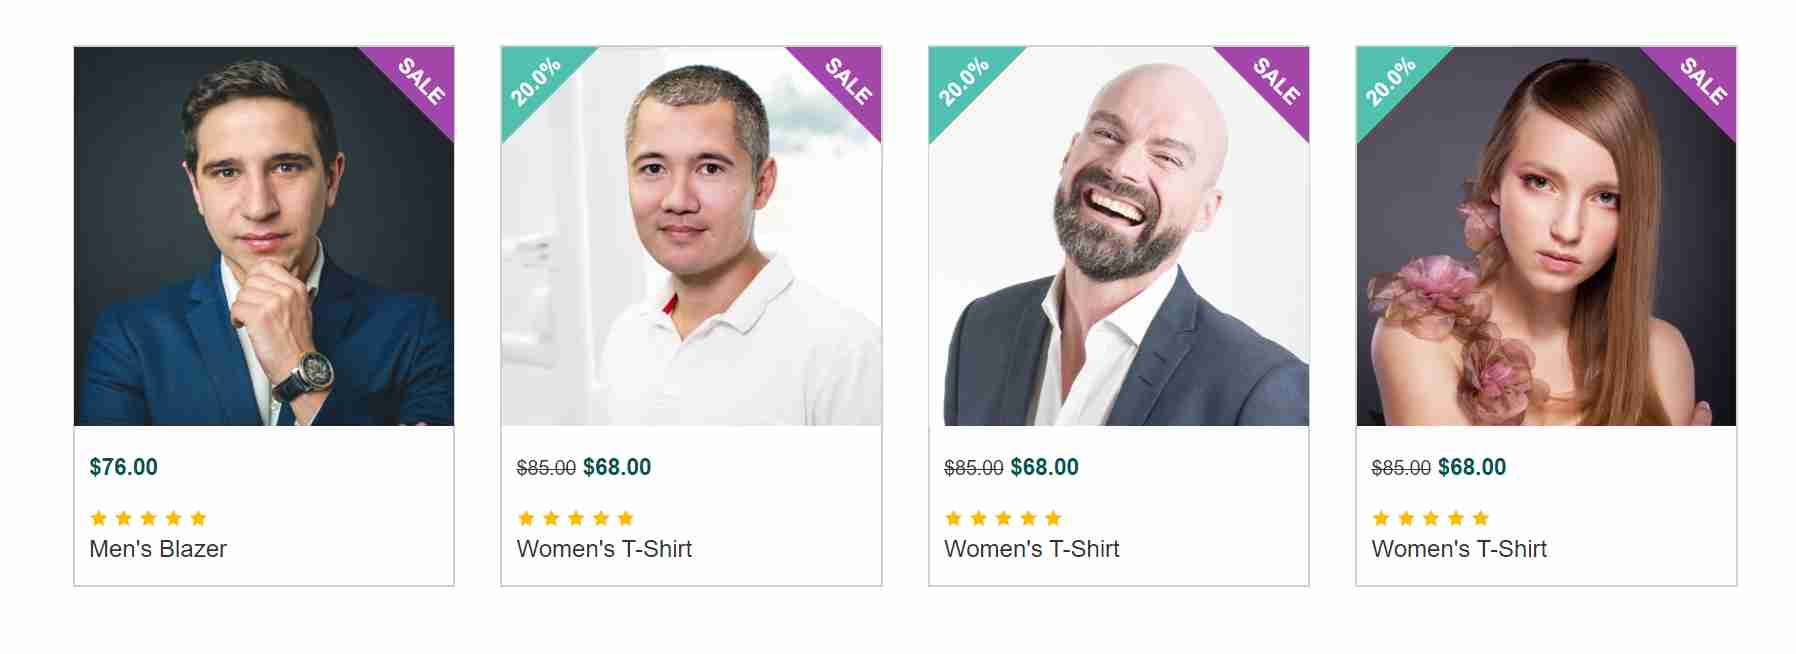 Product ,Team & Pricing Grid Template